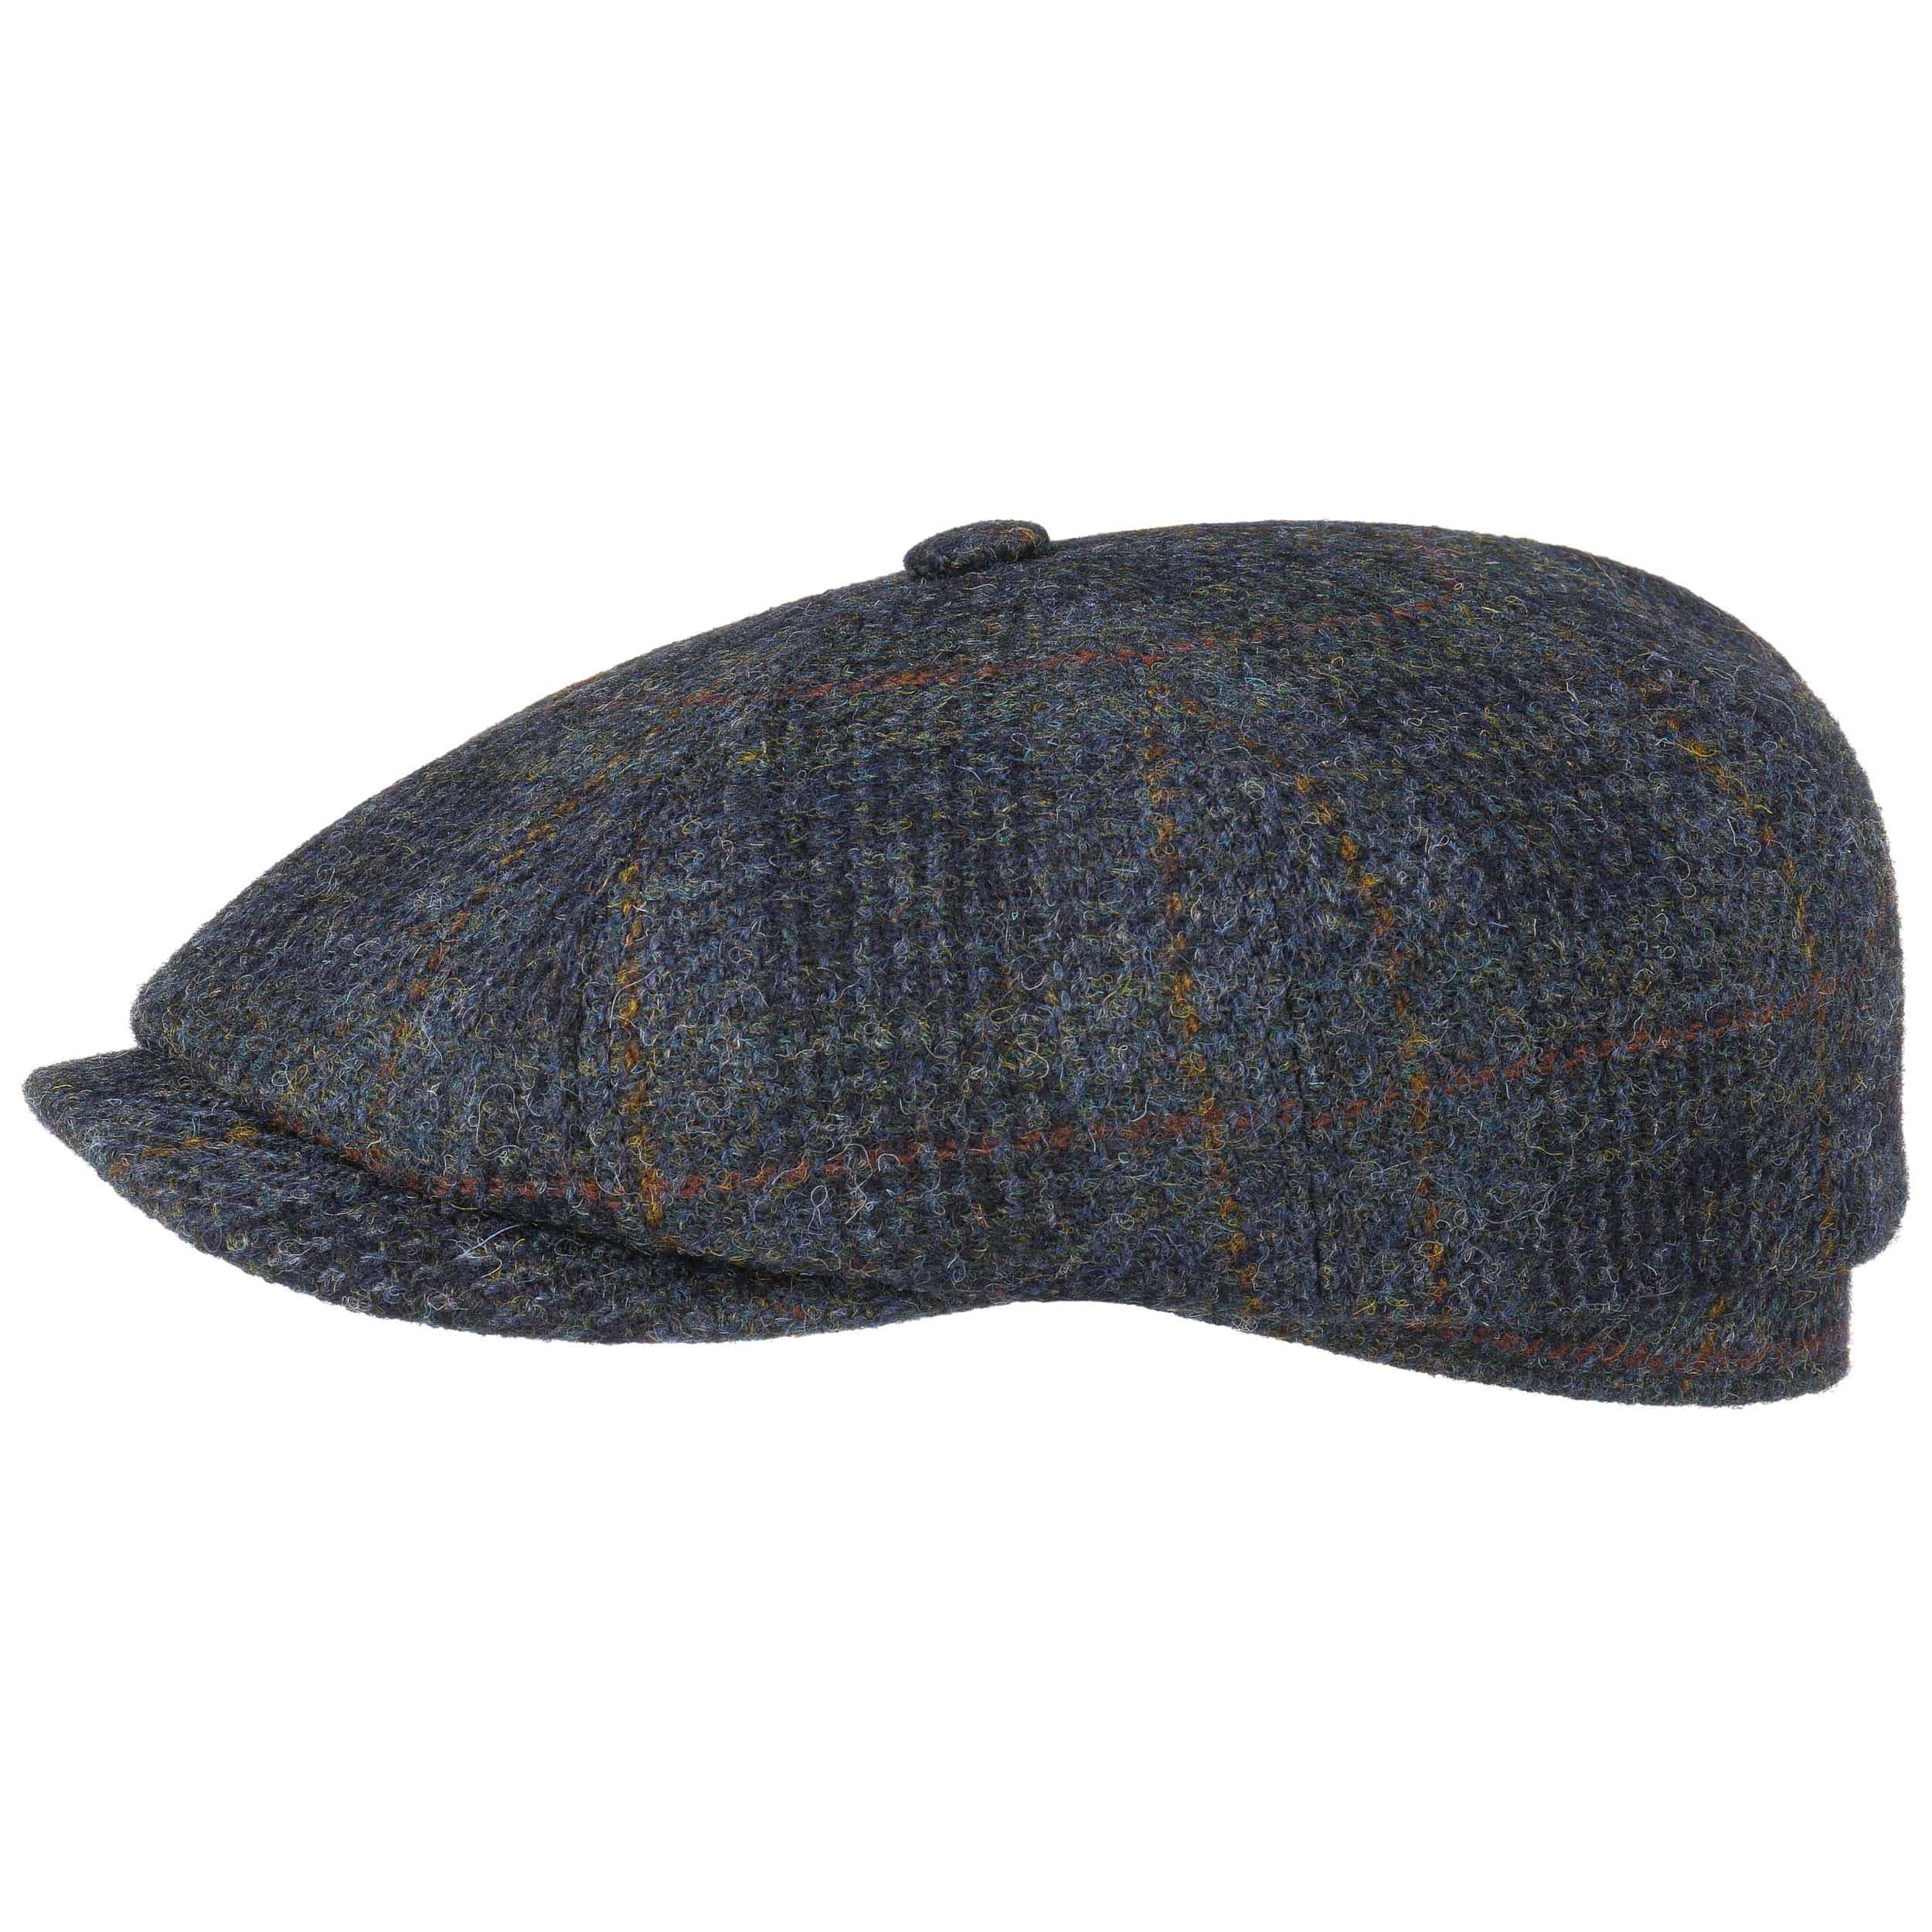 25e777f3c7d ... Hatteras Harris Tweed Check Flat Cap by Stetson - blue 1